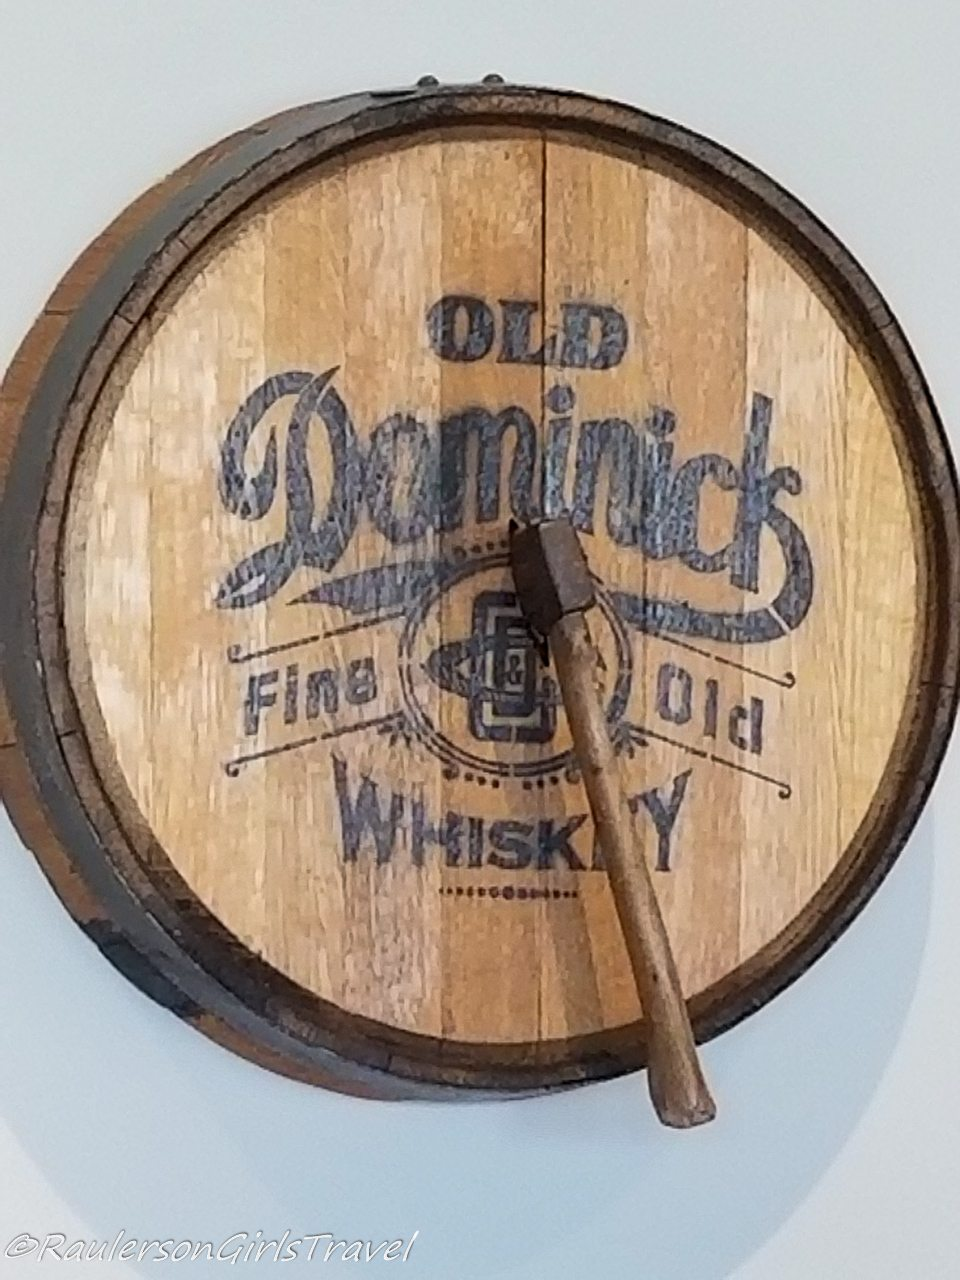 Old Dominick Whiskey